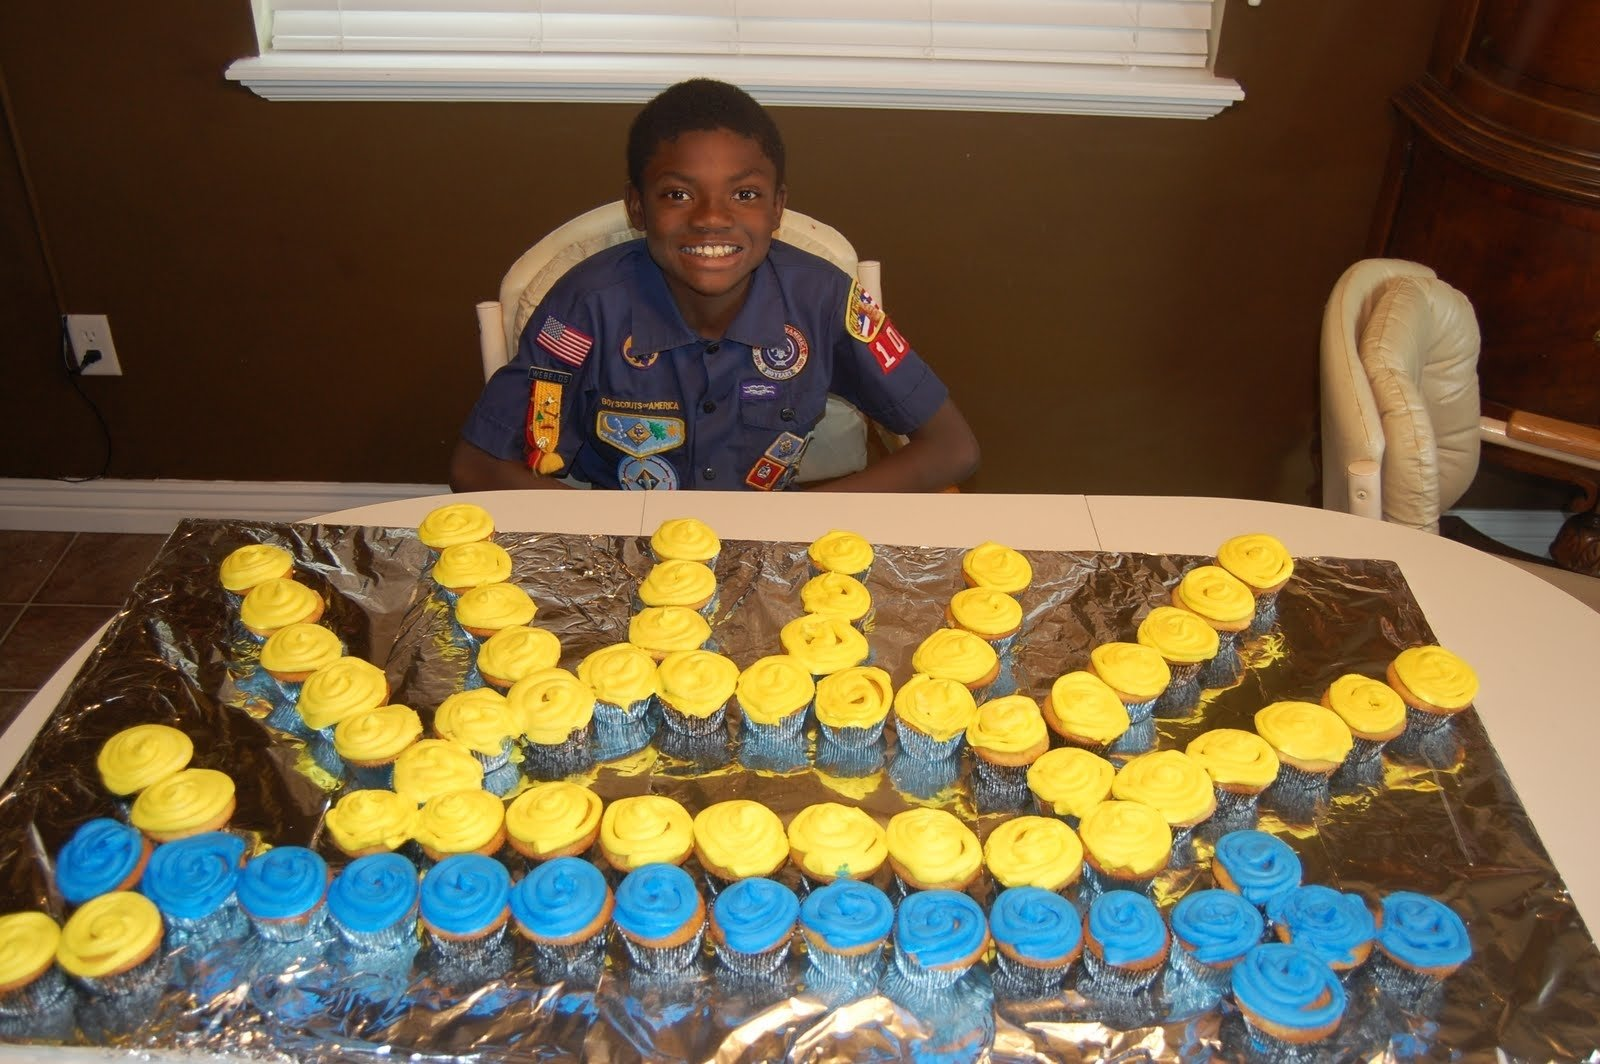 10 Cute Eagle Scout Service Project Ideas pony express district cub scouts blue and gold table decor ideas 1 2021